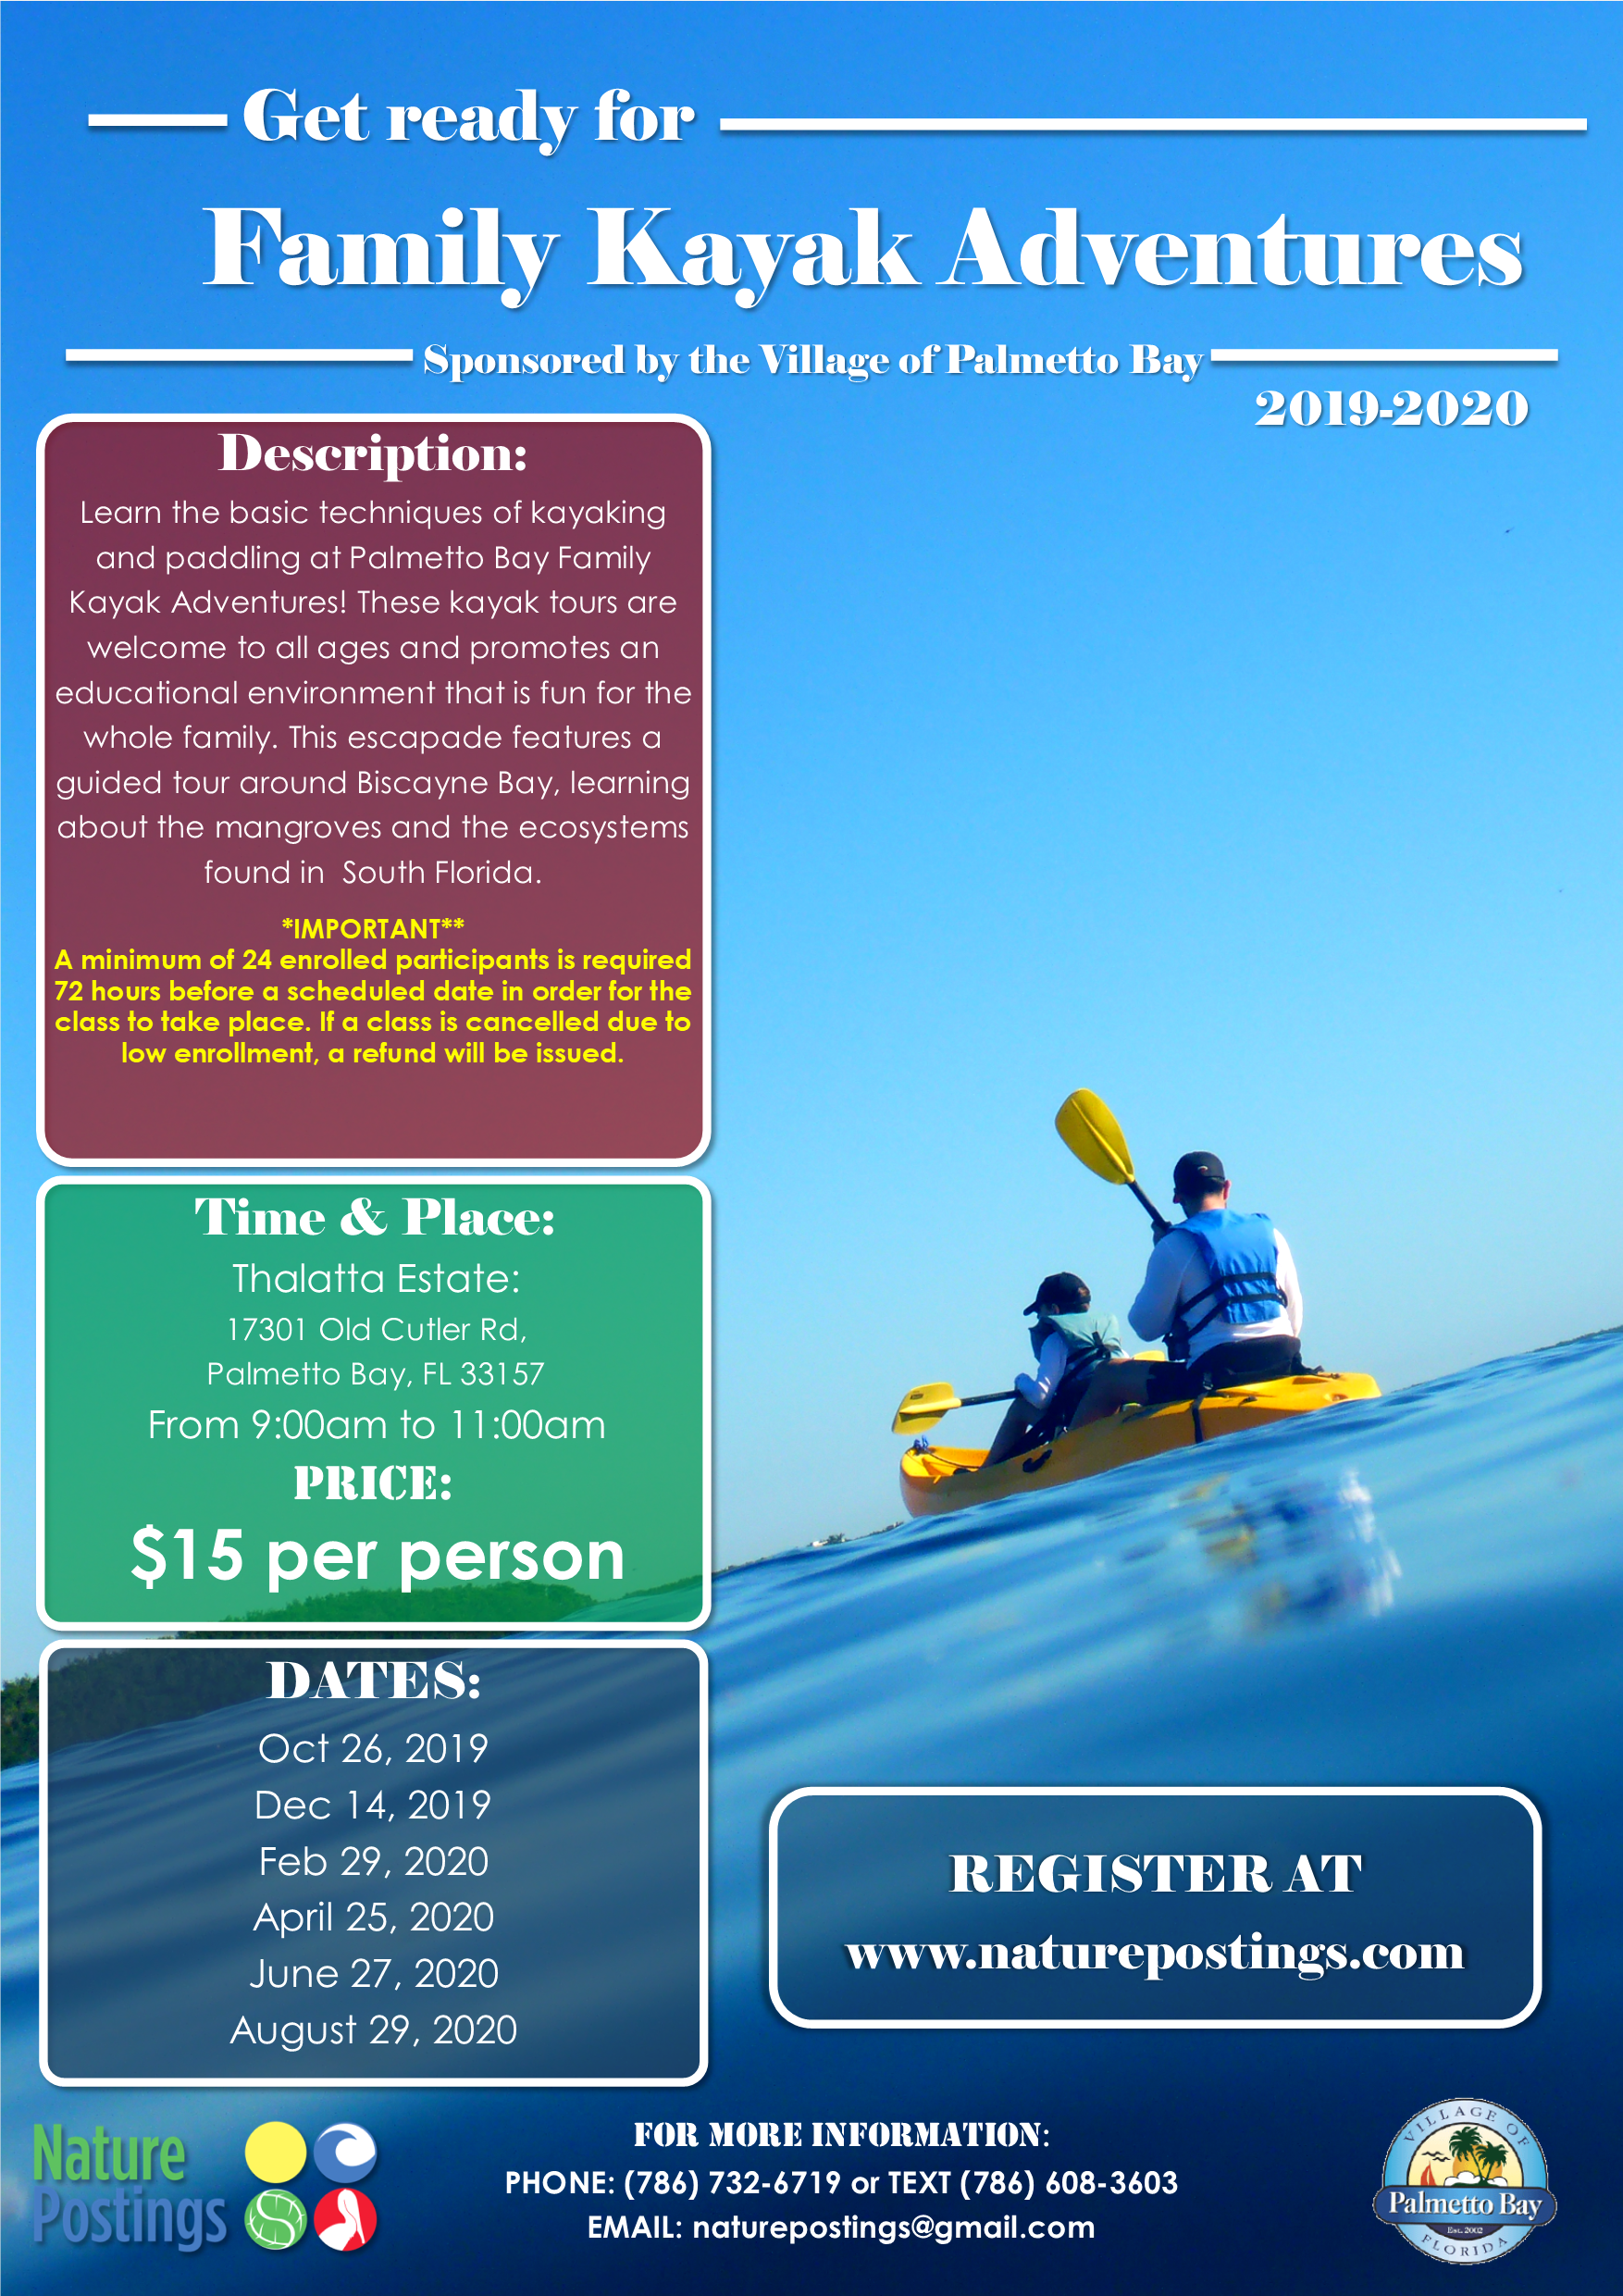 Family Kayak Adventures, Saturdays every other month staring in December from 9-11am launching from